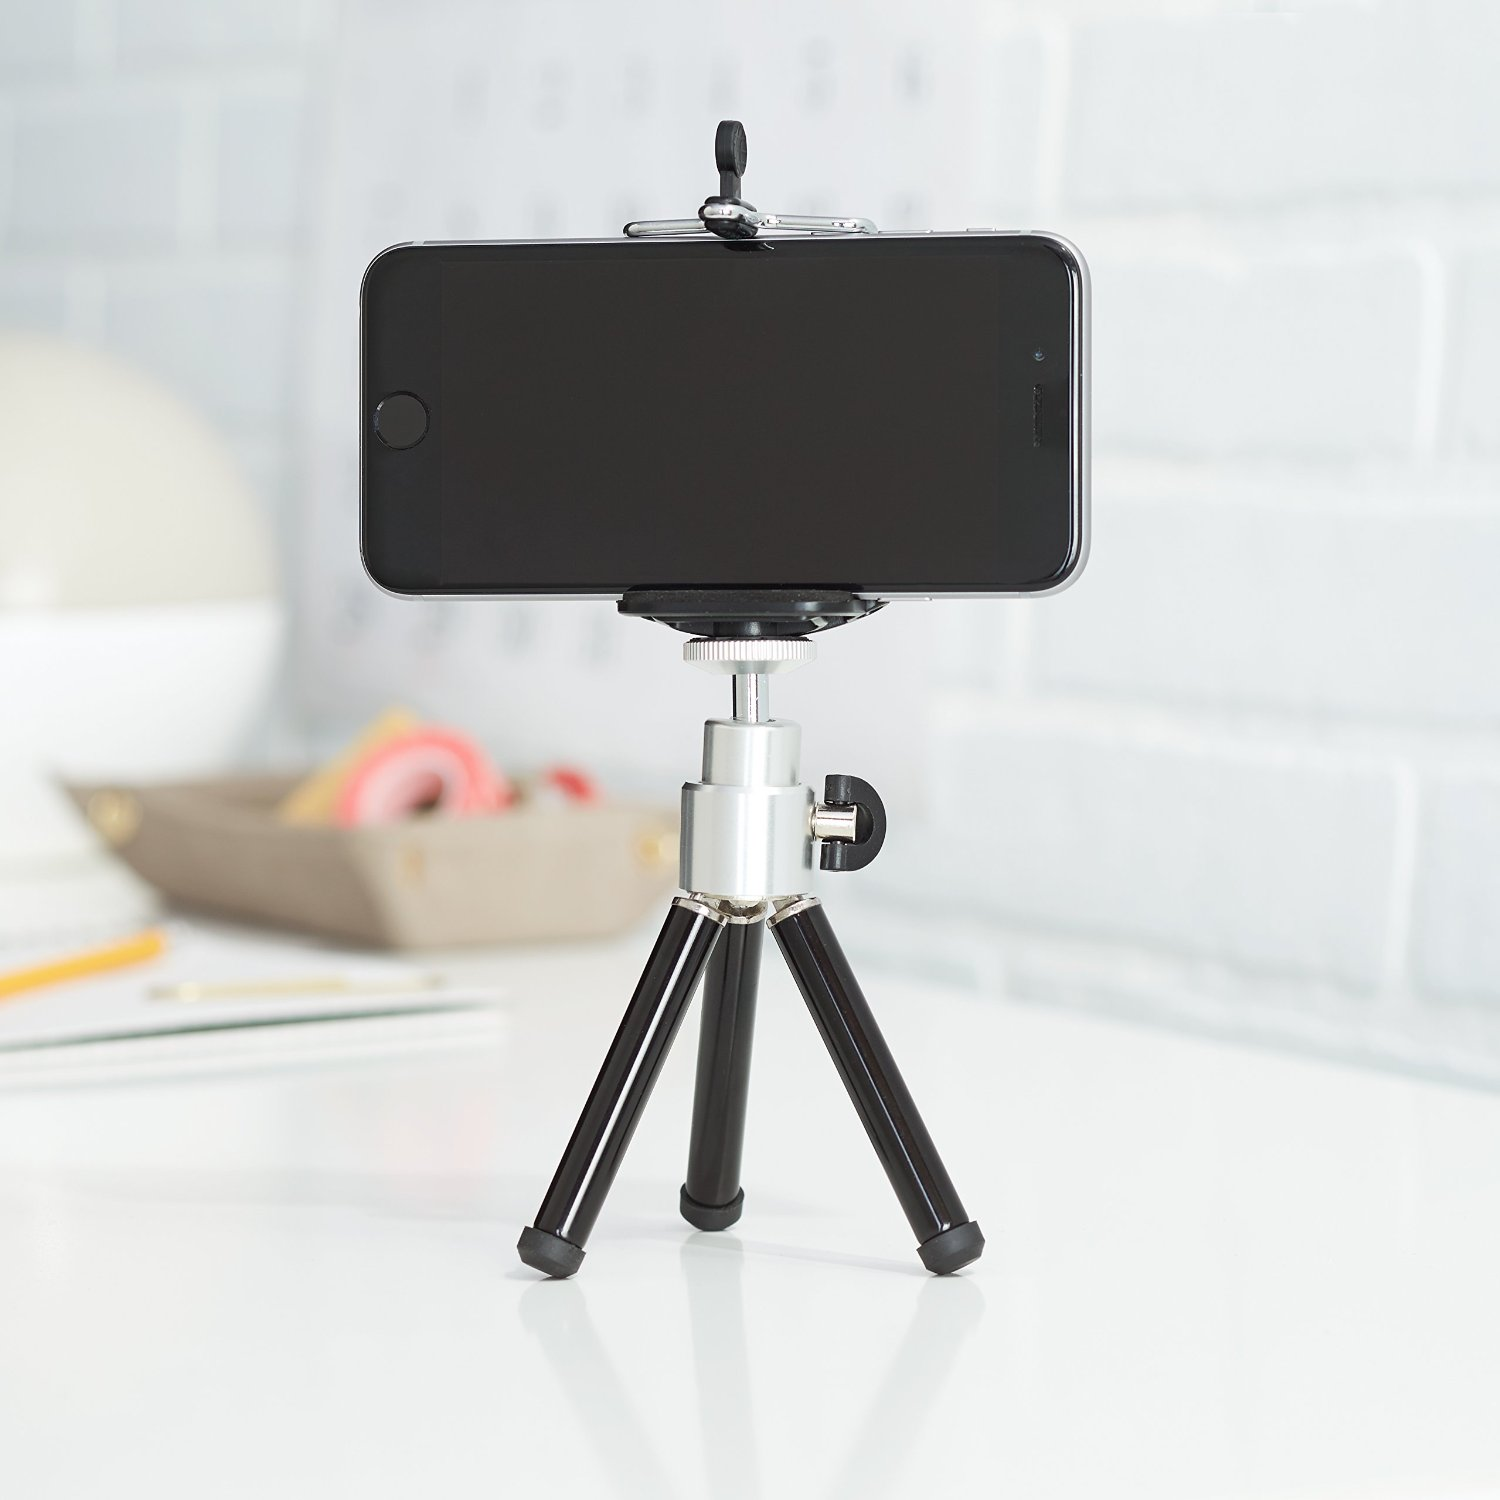 Amazon Basics mini tripod, mini camera stand, small tripod, travel tripod